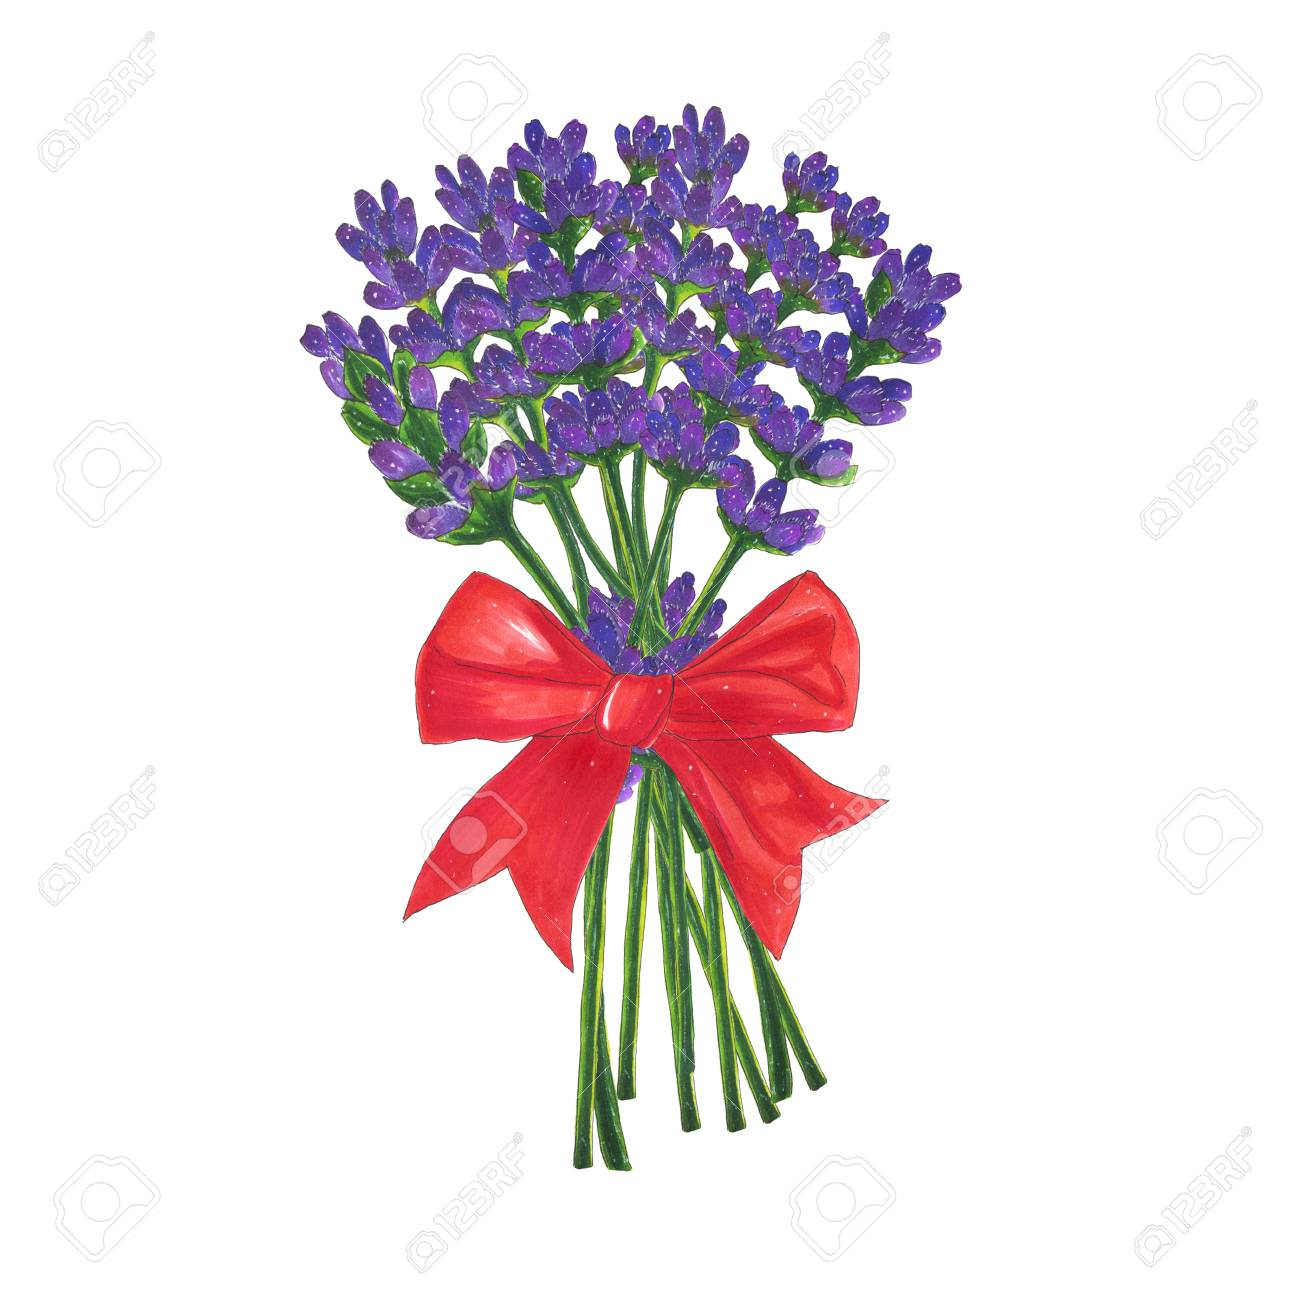 Flowers Bouquet Of Lavender With Red Bow Marker Illustration ...